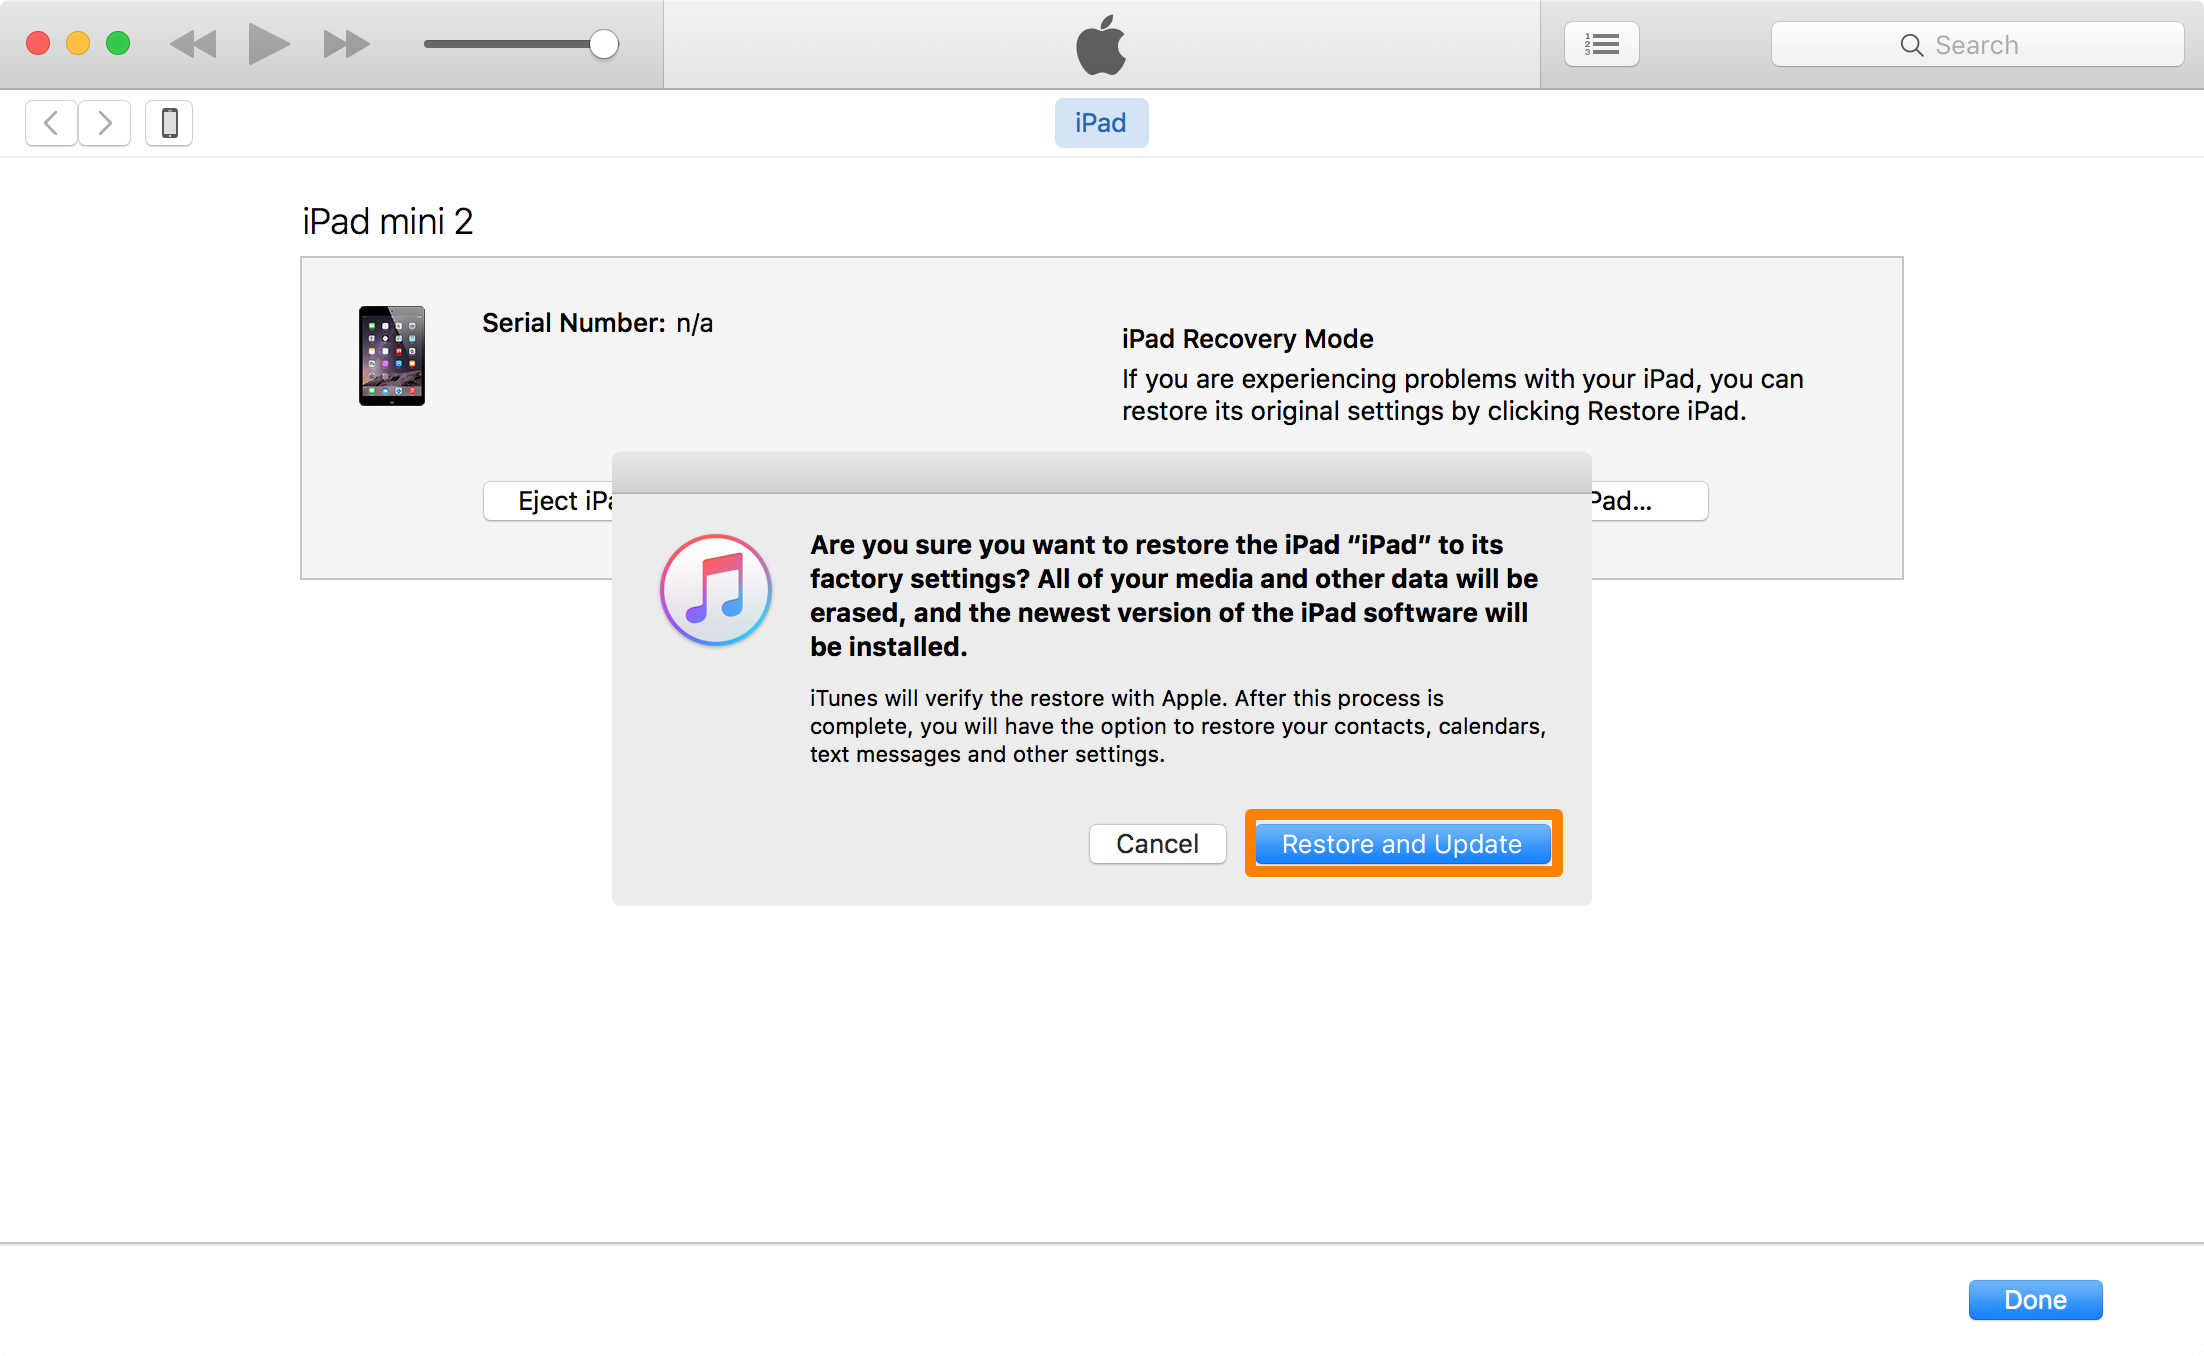 iTunes Restore and Update